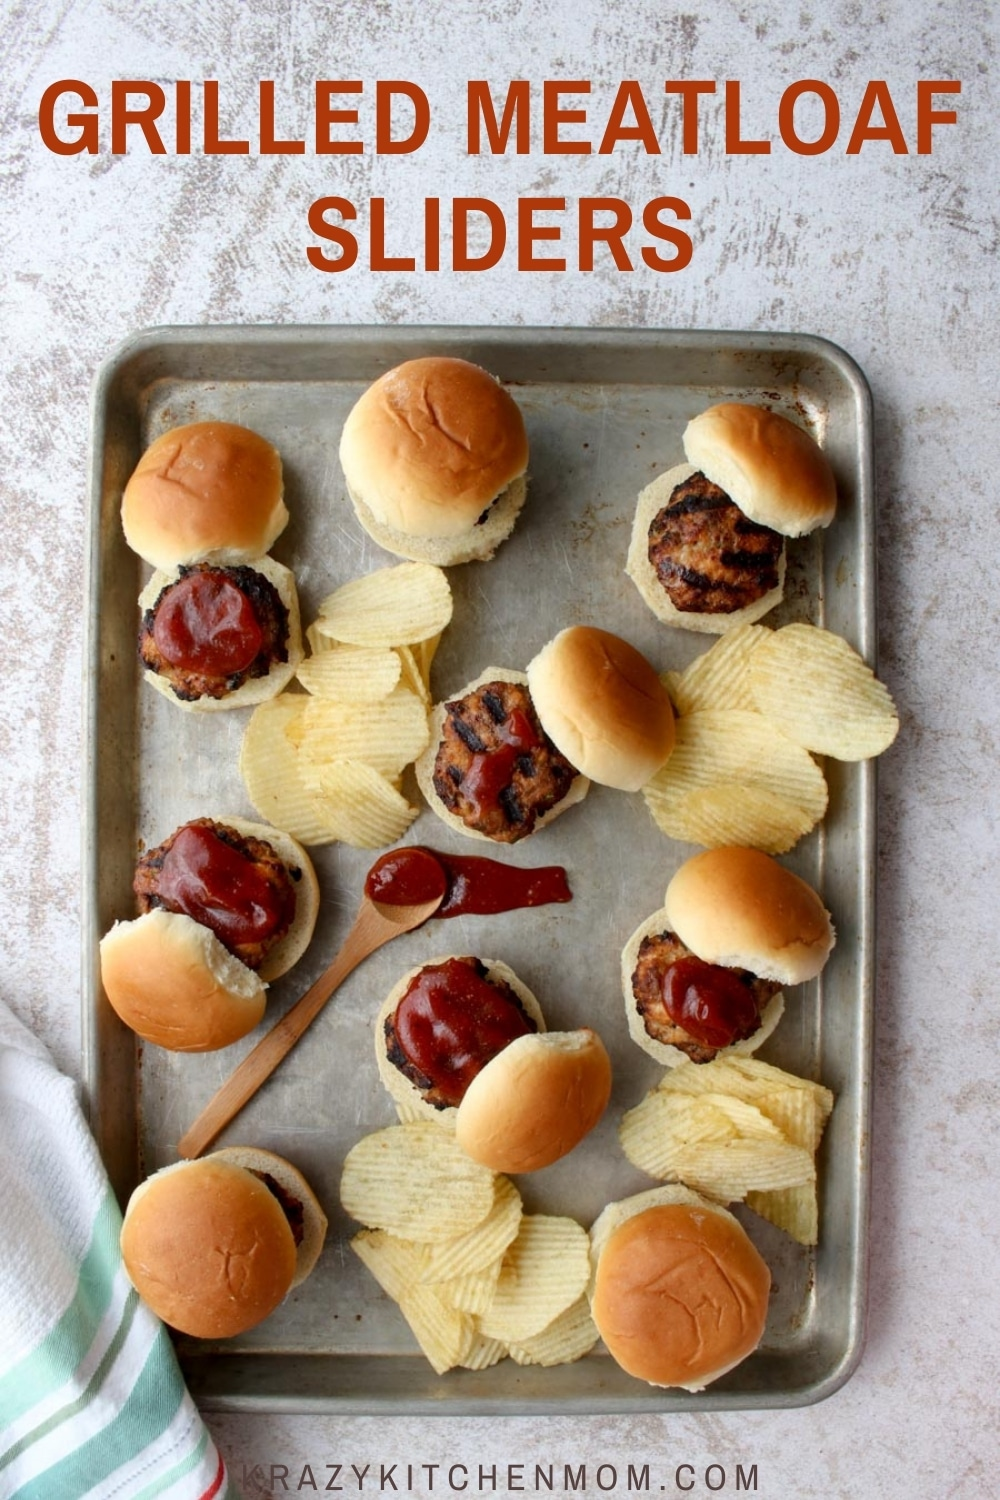 Grilled Meatloaf Sliders are a whole new way to enjoy a family favorite. Mama's classic meatloaf meets family-friendly handheld grilled sliders. As an afternoon snack, a family cookout, or a casual dinner on the patio, sliders are always a big hit. via @krazykitchenmom